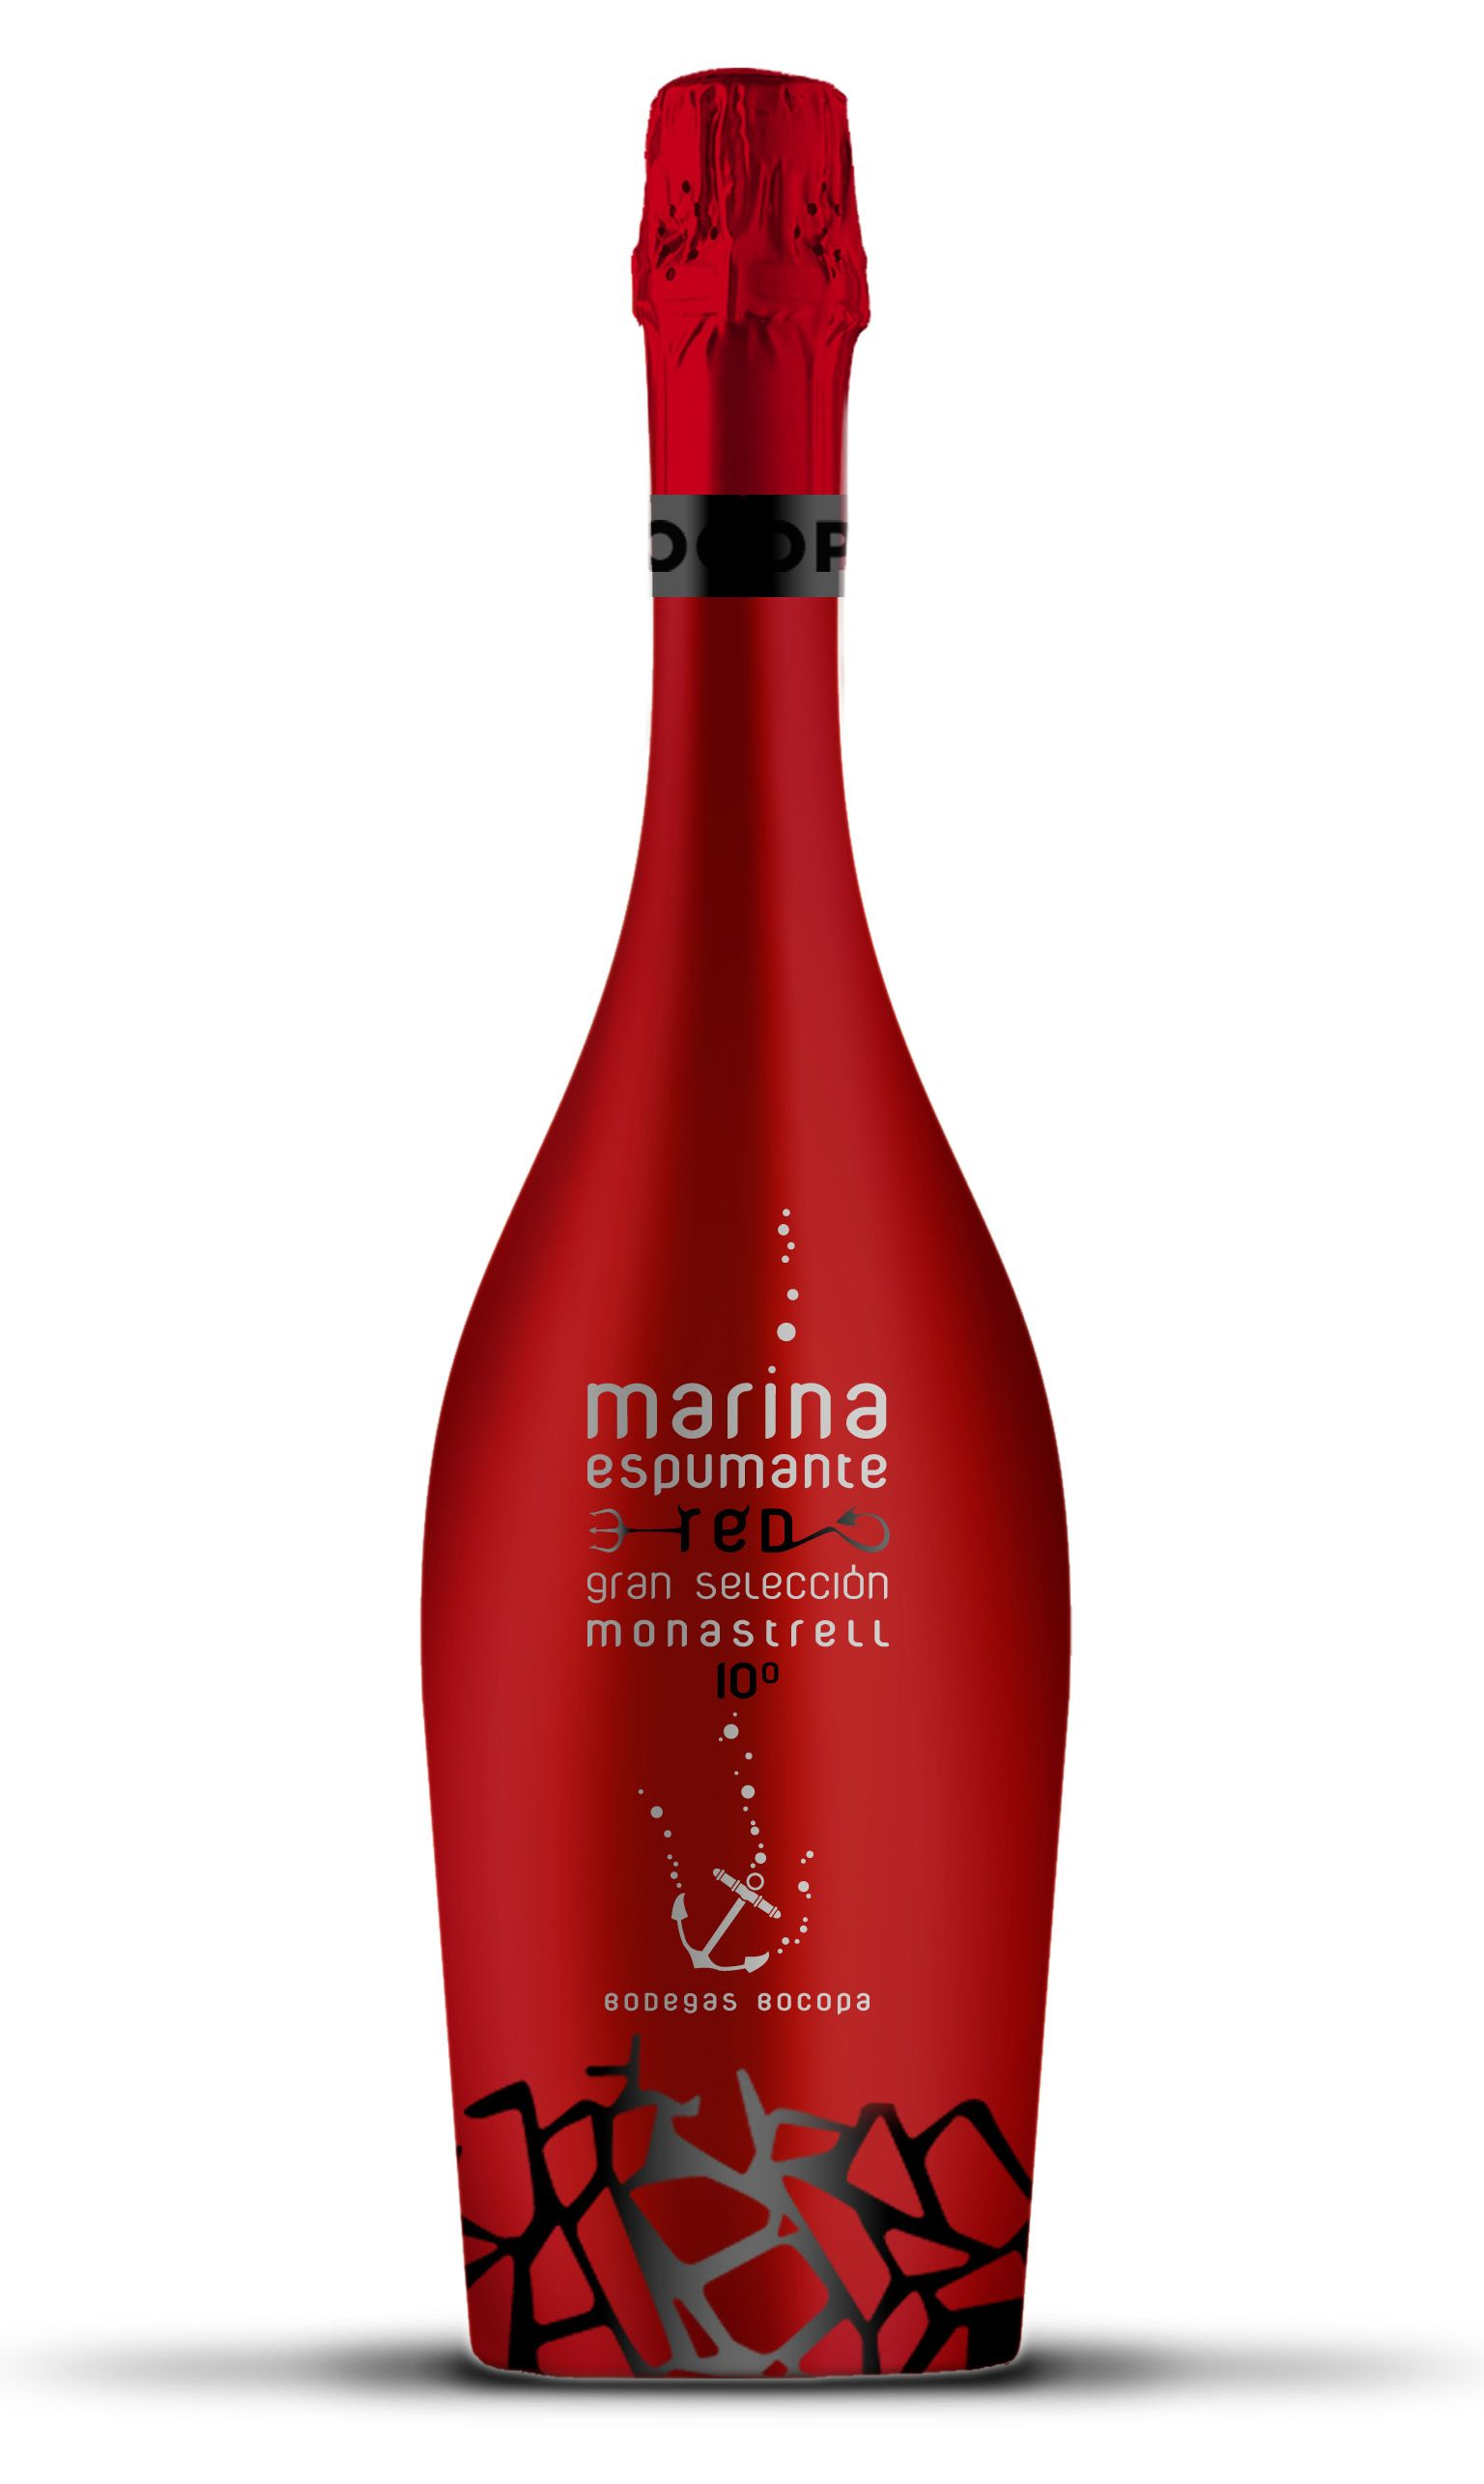 Marina Espumante Red Tinto Espumoso 100 Monastrell Nuevo Producto Bocopa Bottle Design Packaging Wine Design Red Champagne